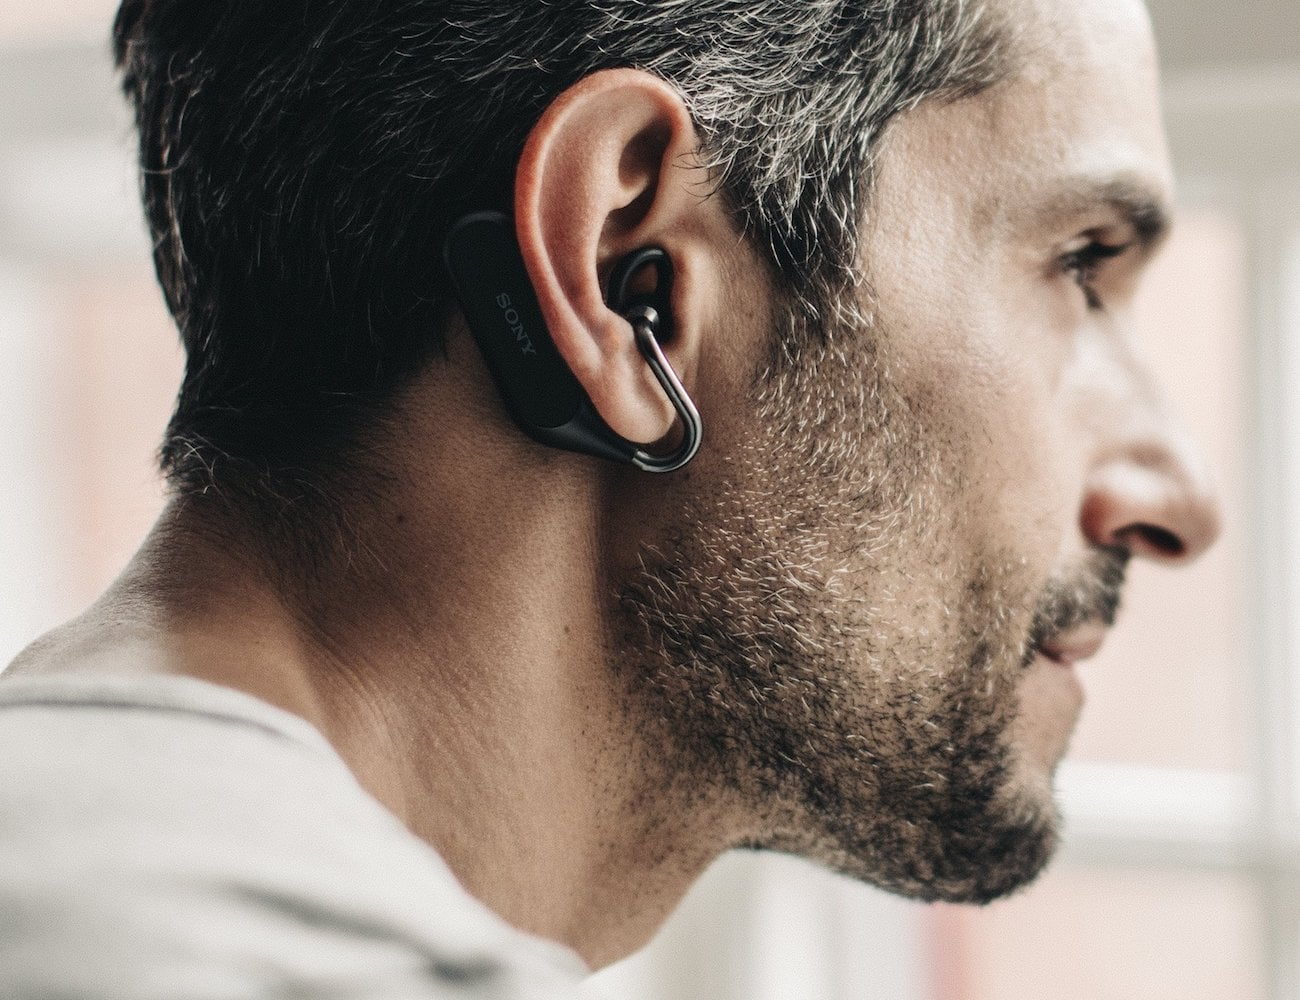 Sony Xperia Ear Open Style Concept